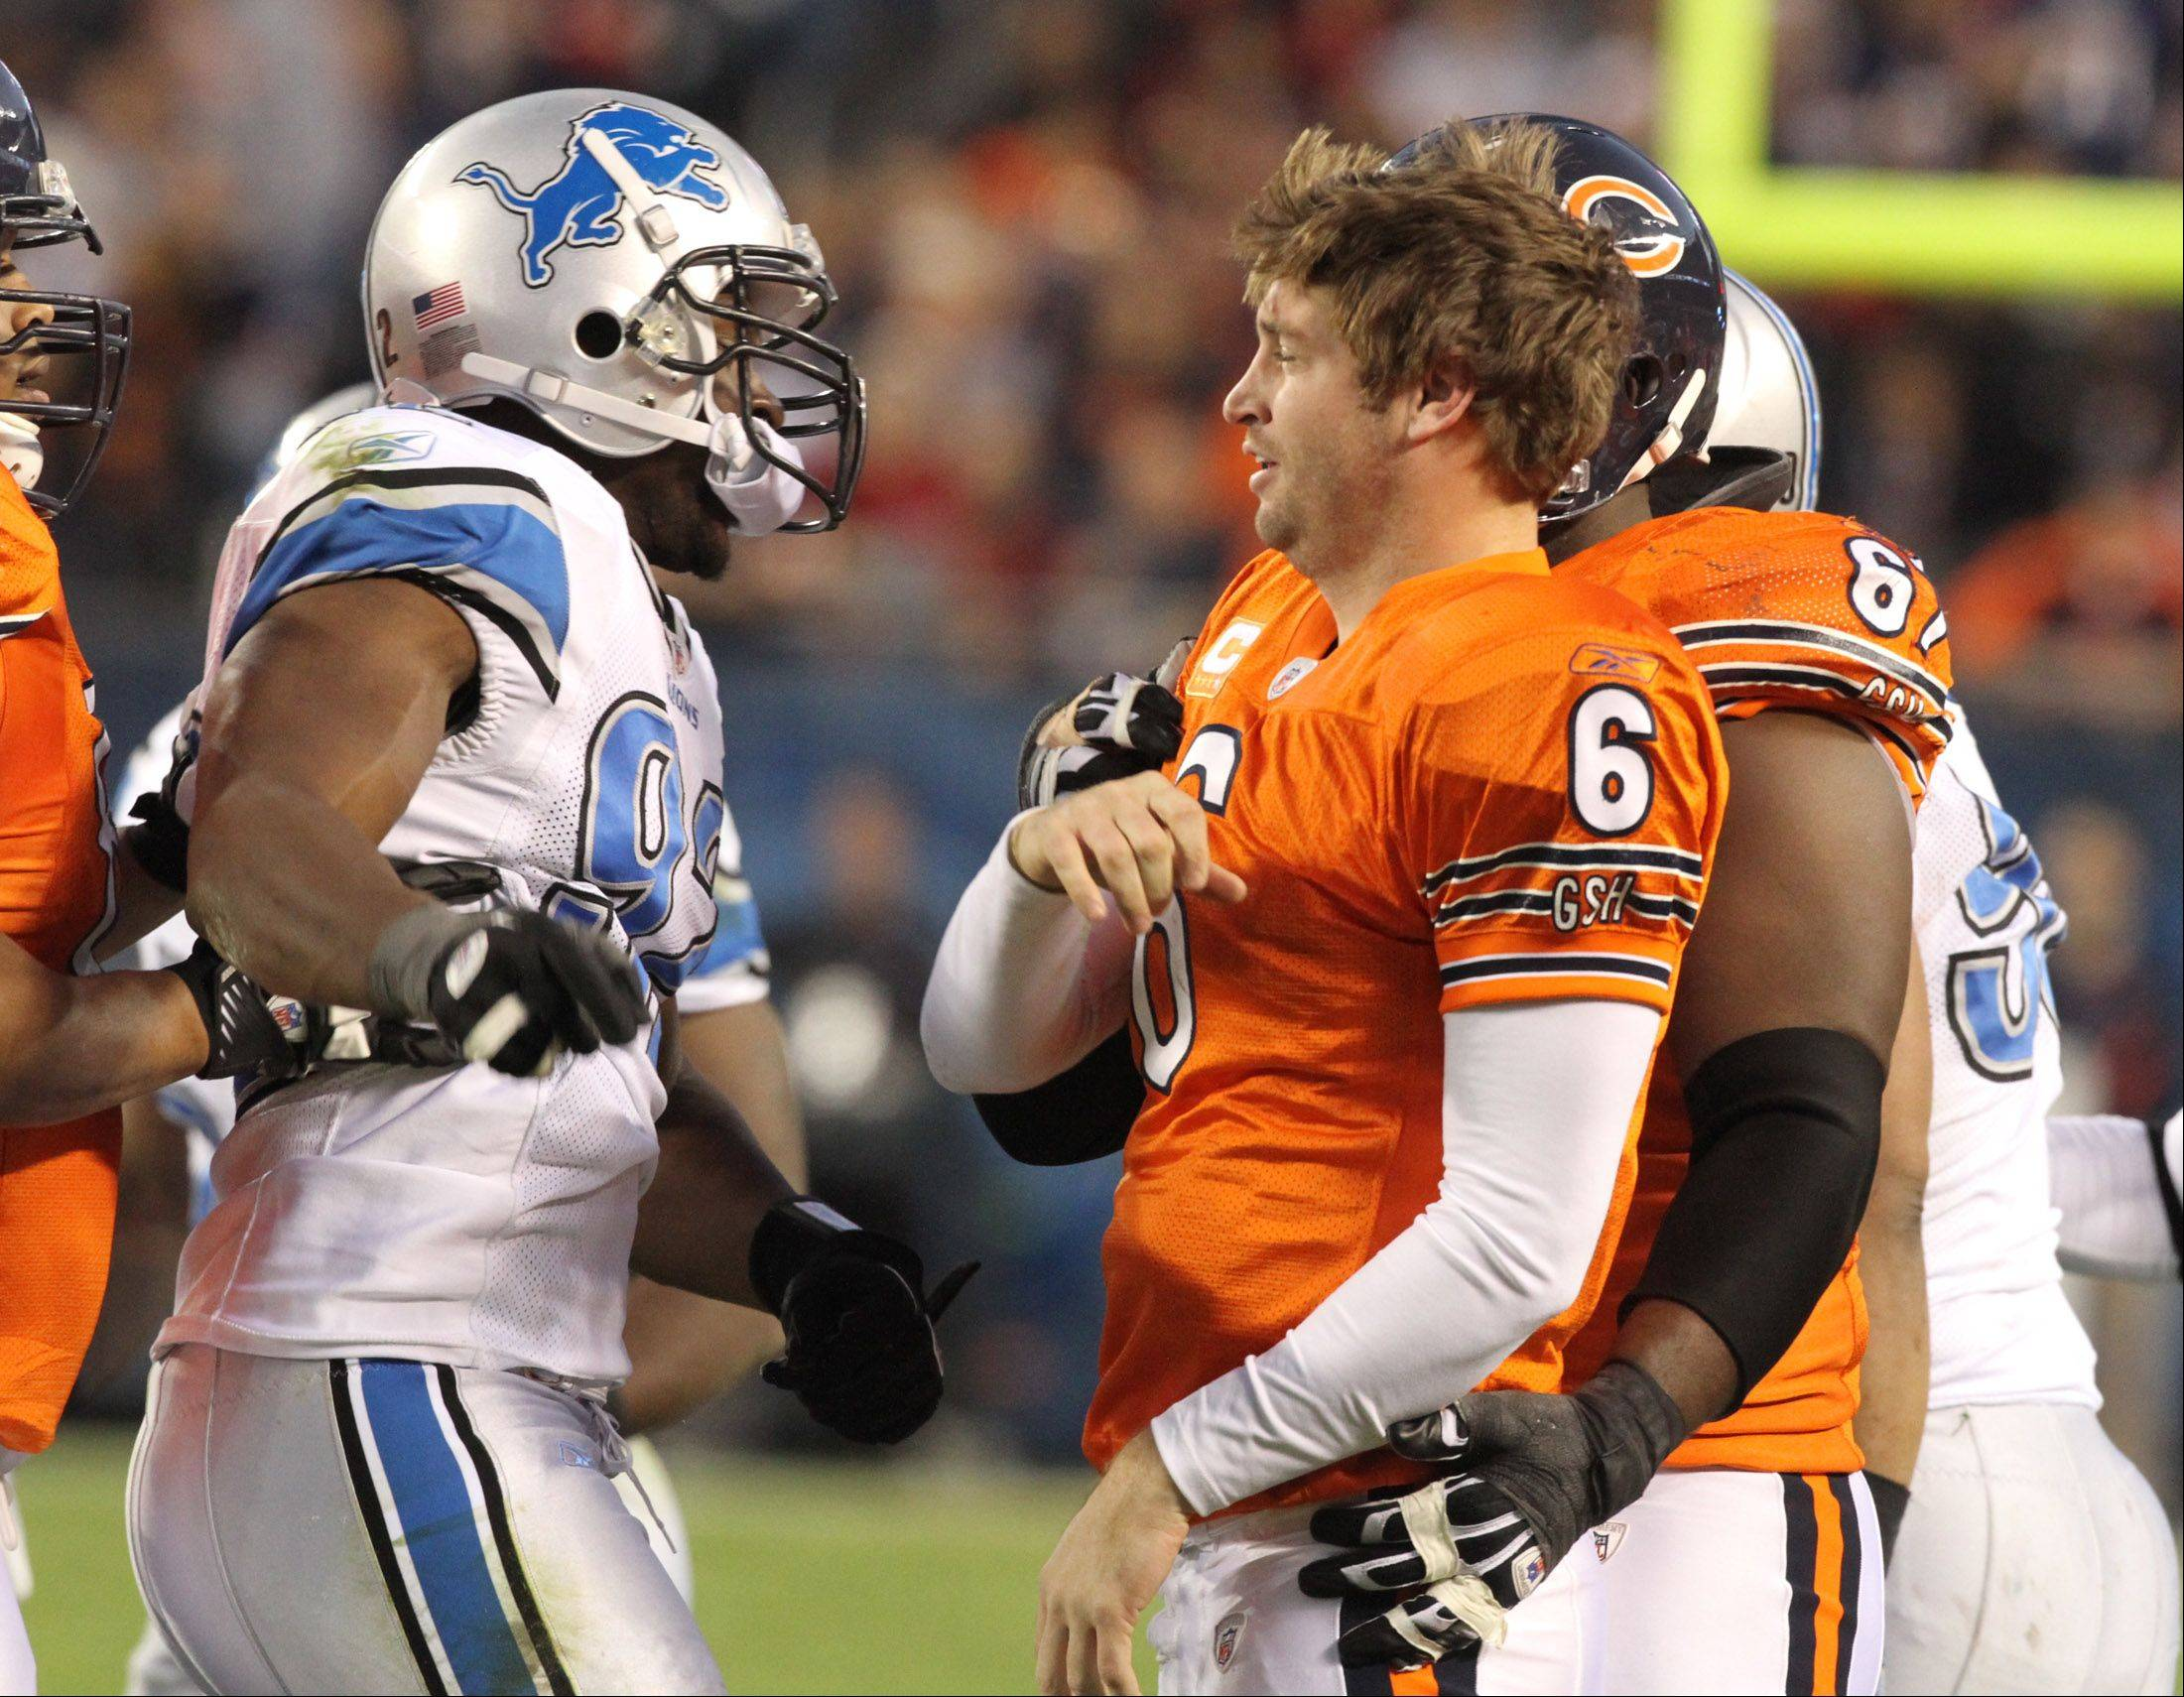 Jay Cutler after being sacked by Detroit Lions Cliff Avril at Soldier Field on Sunday.